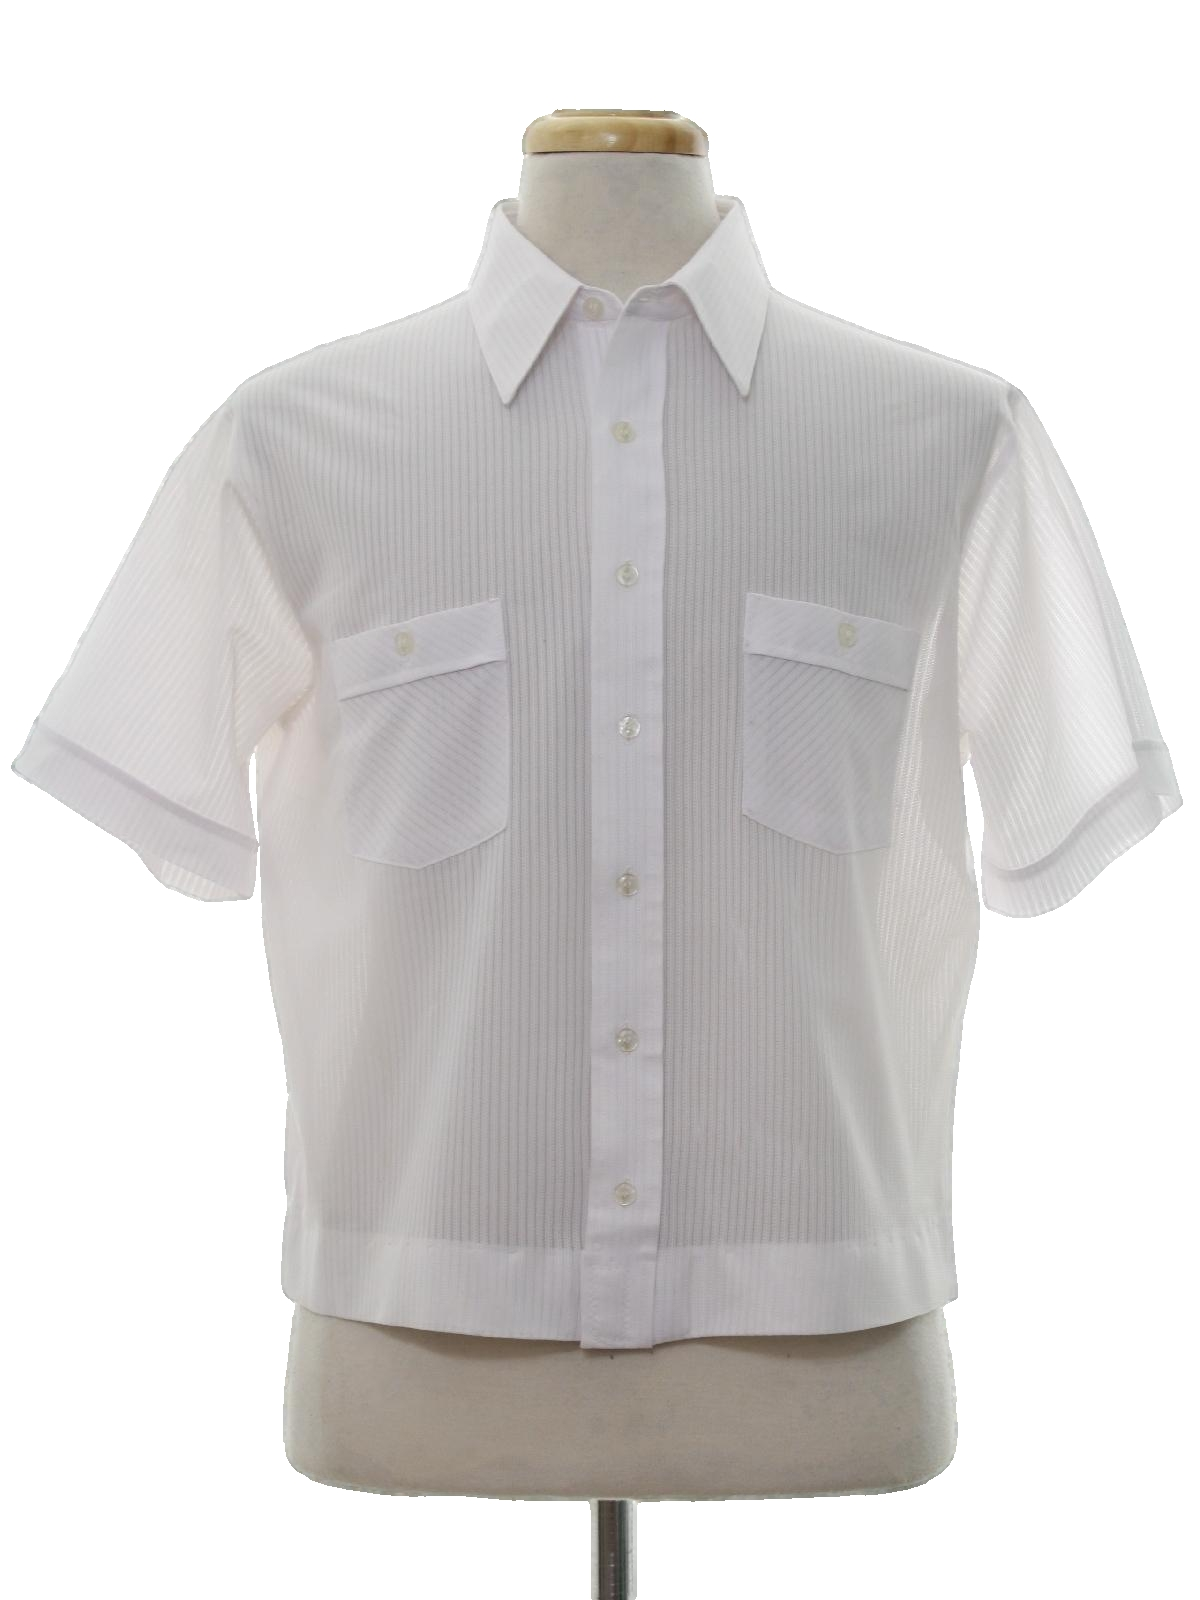 Retro 1960 S Shirt Haband 60s Style Made In 80s